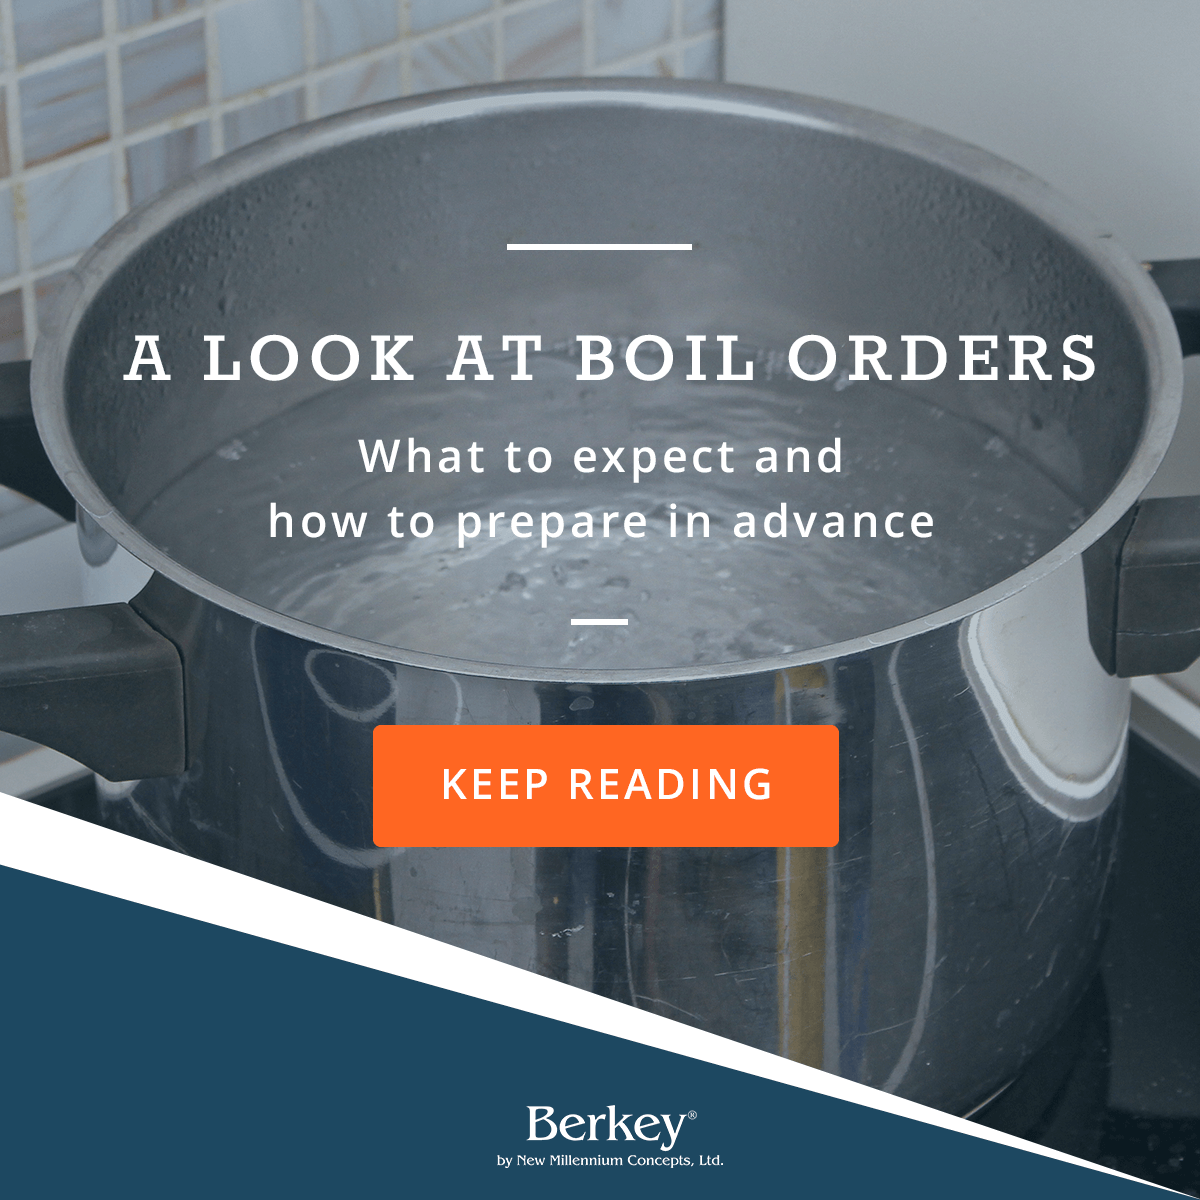 A look at boil orders, what to expect and how to prepare in advance